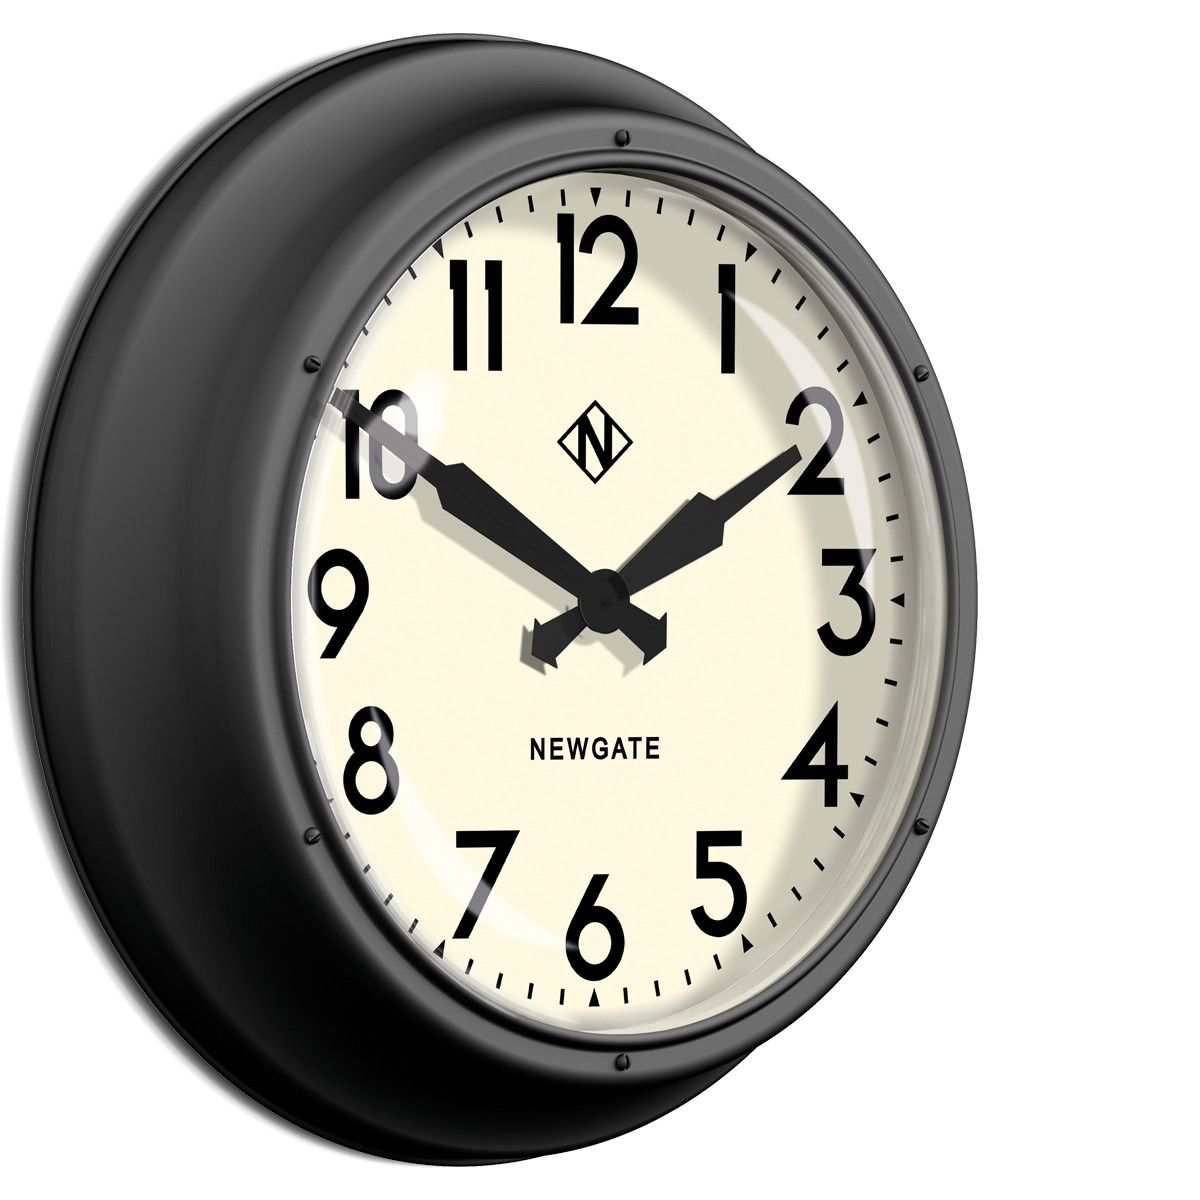 Giant Electric Oversized Black Station Wall Clock Newgate Clocks Homeware Wall Clock Oversized Wall Clock Small Wall Clock